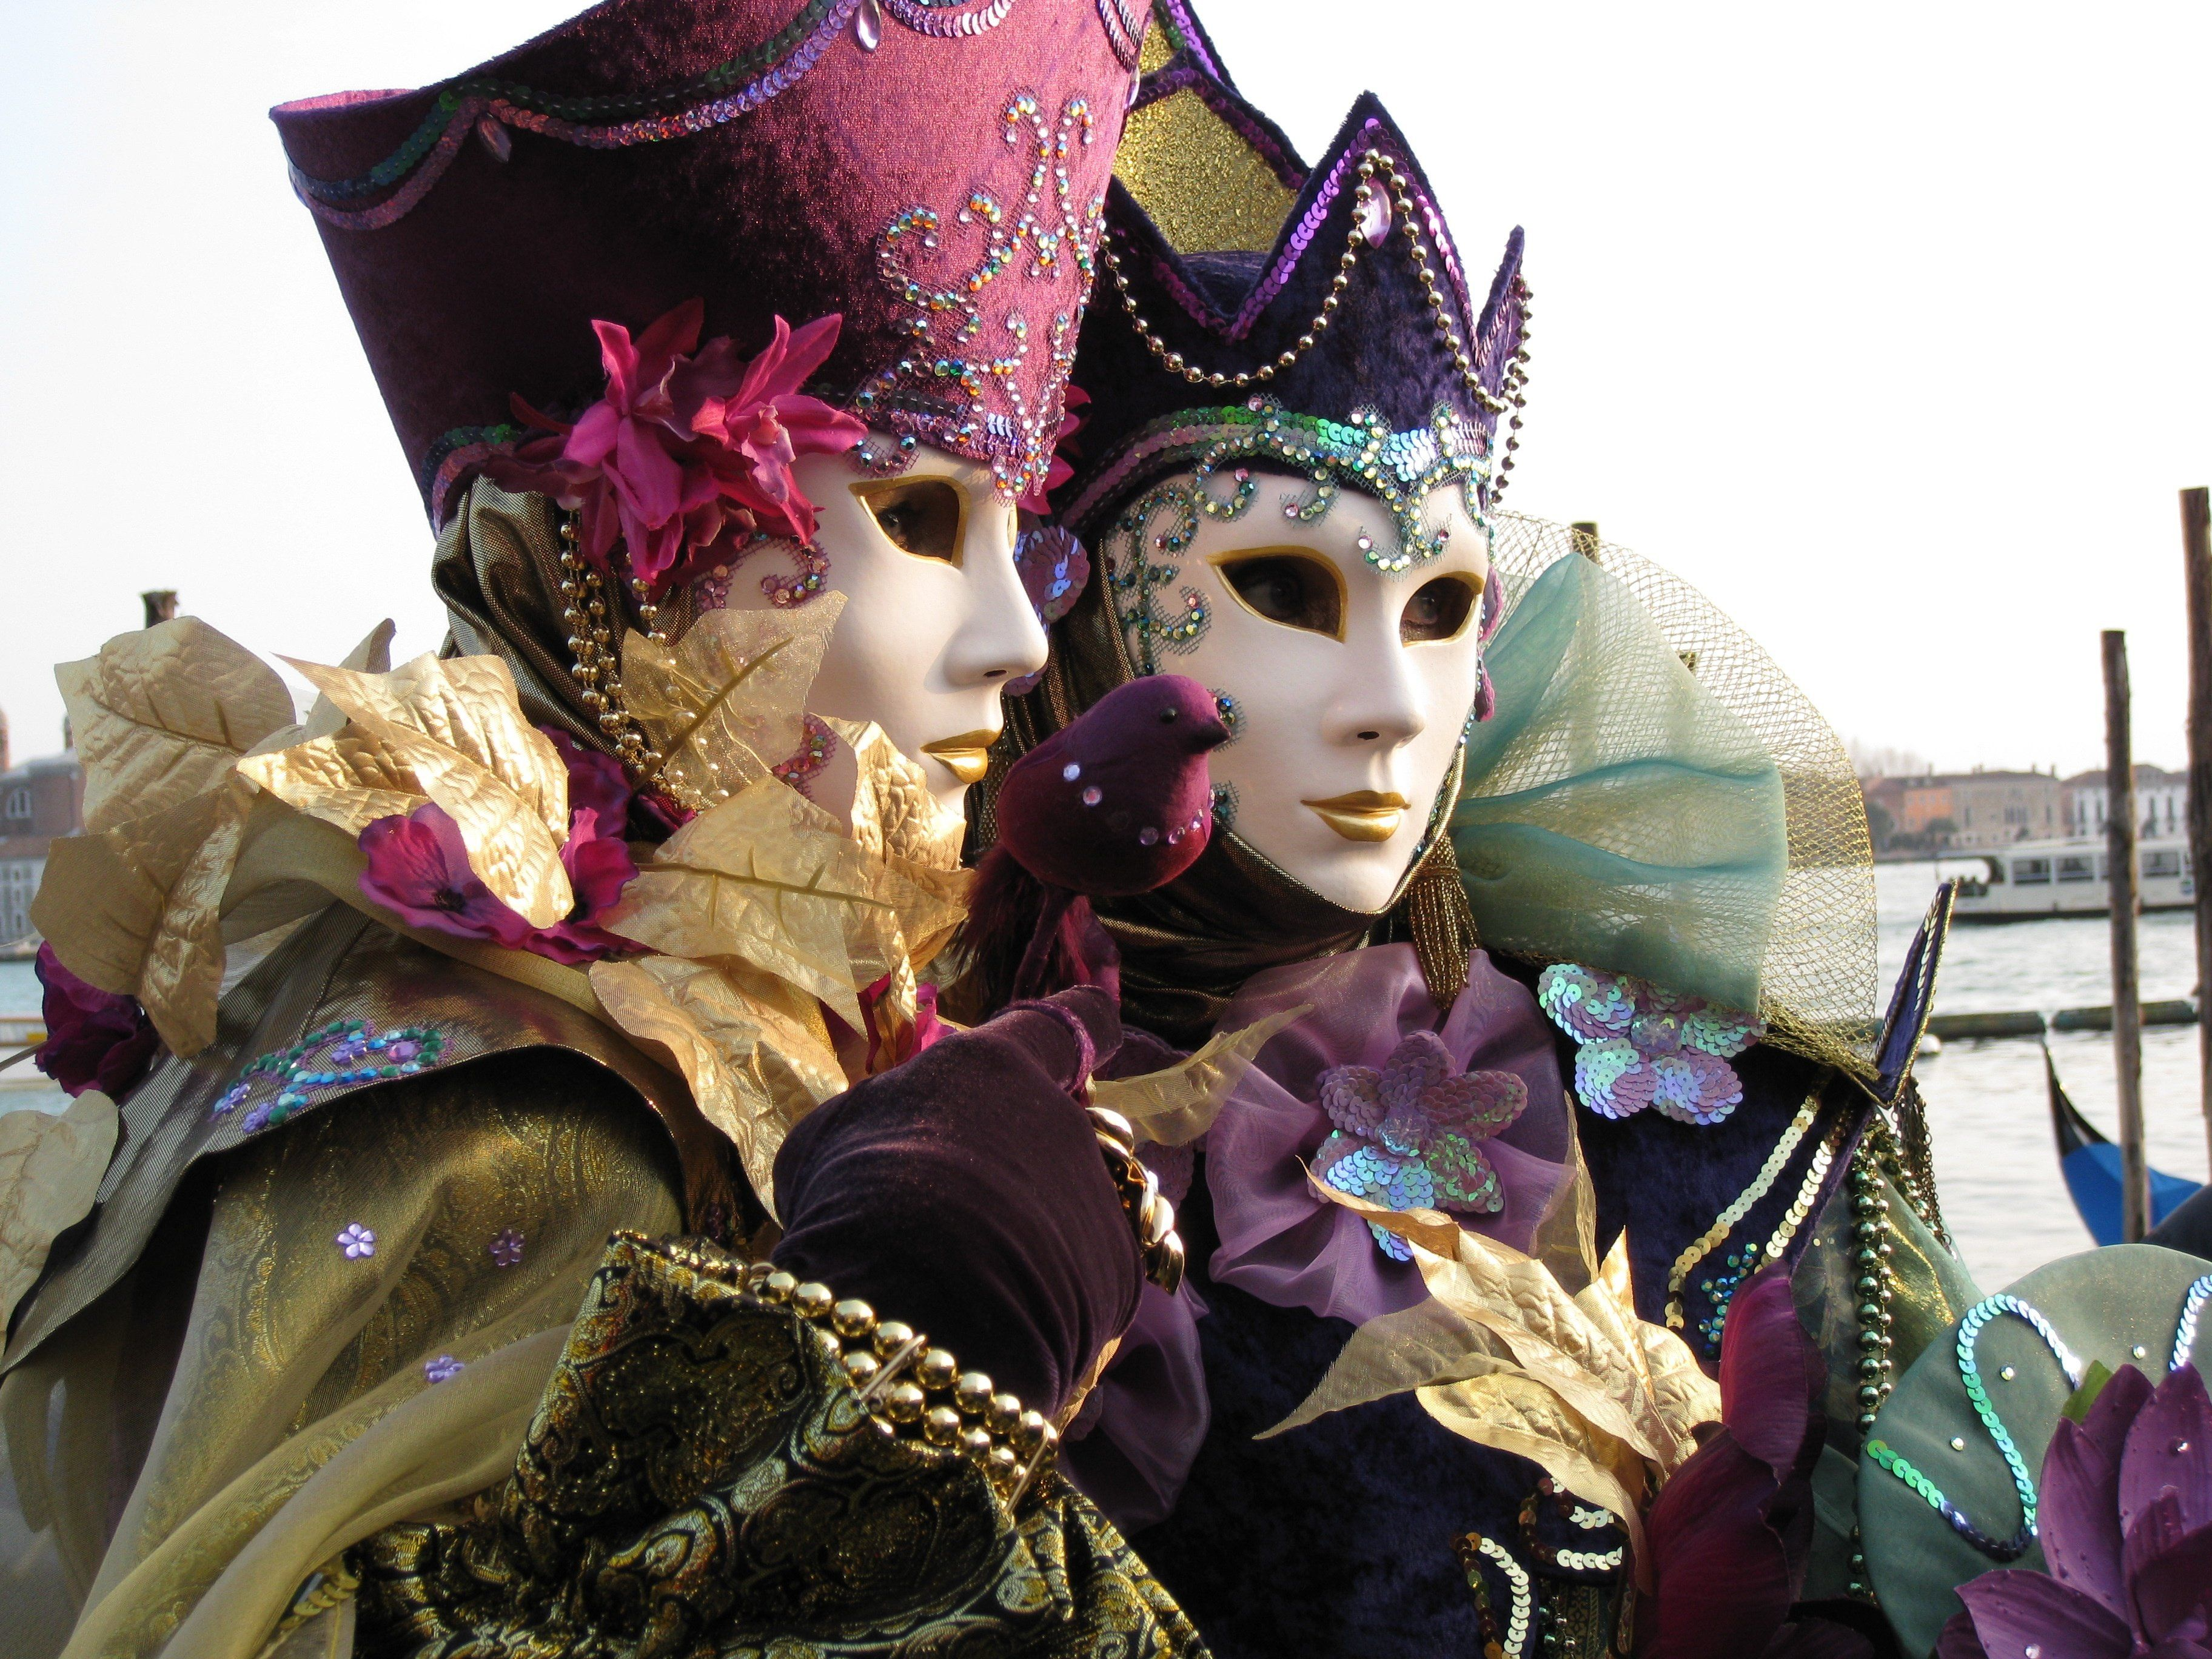 Venetian Carnival. Two women pose in elaborate costumes beside the canal.